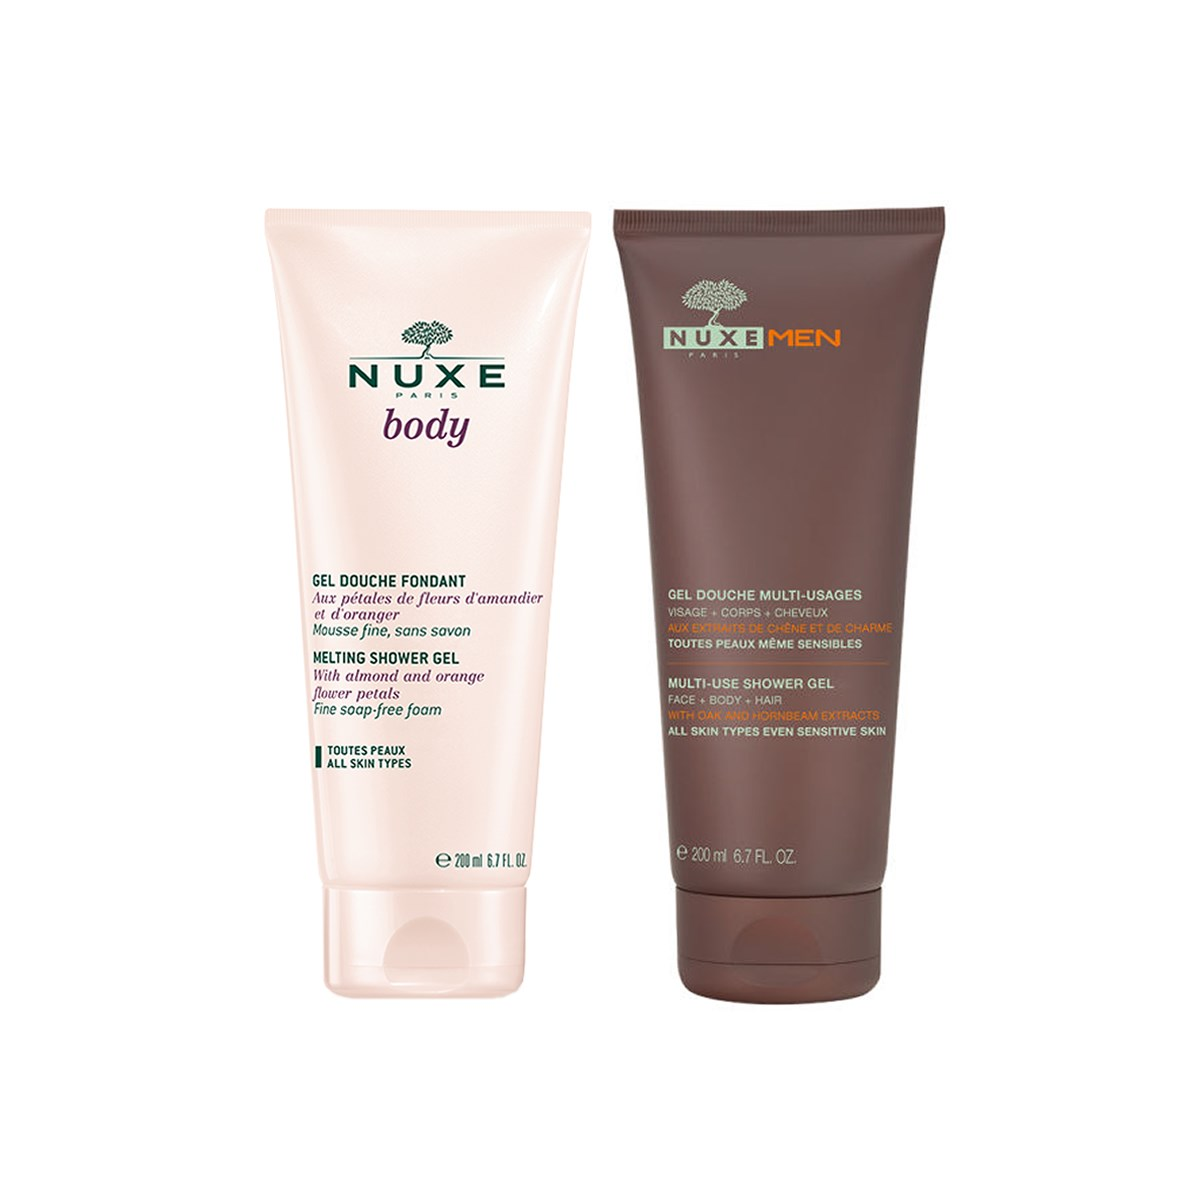 Nuxe Body Shower Gel Duo Pack For Him and For Her